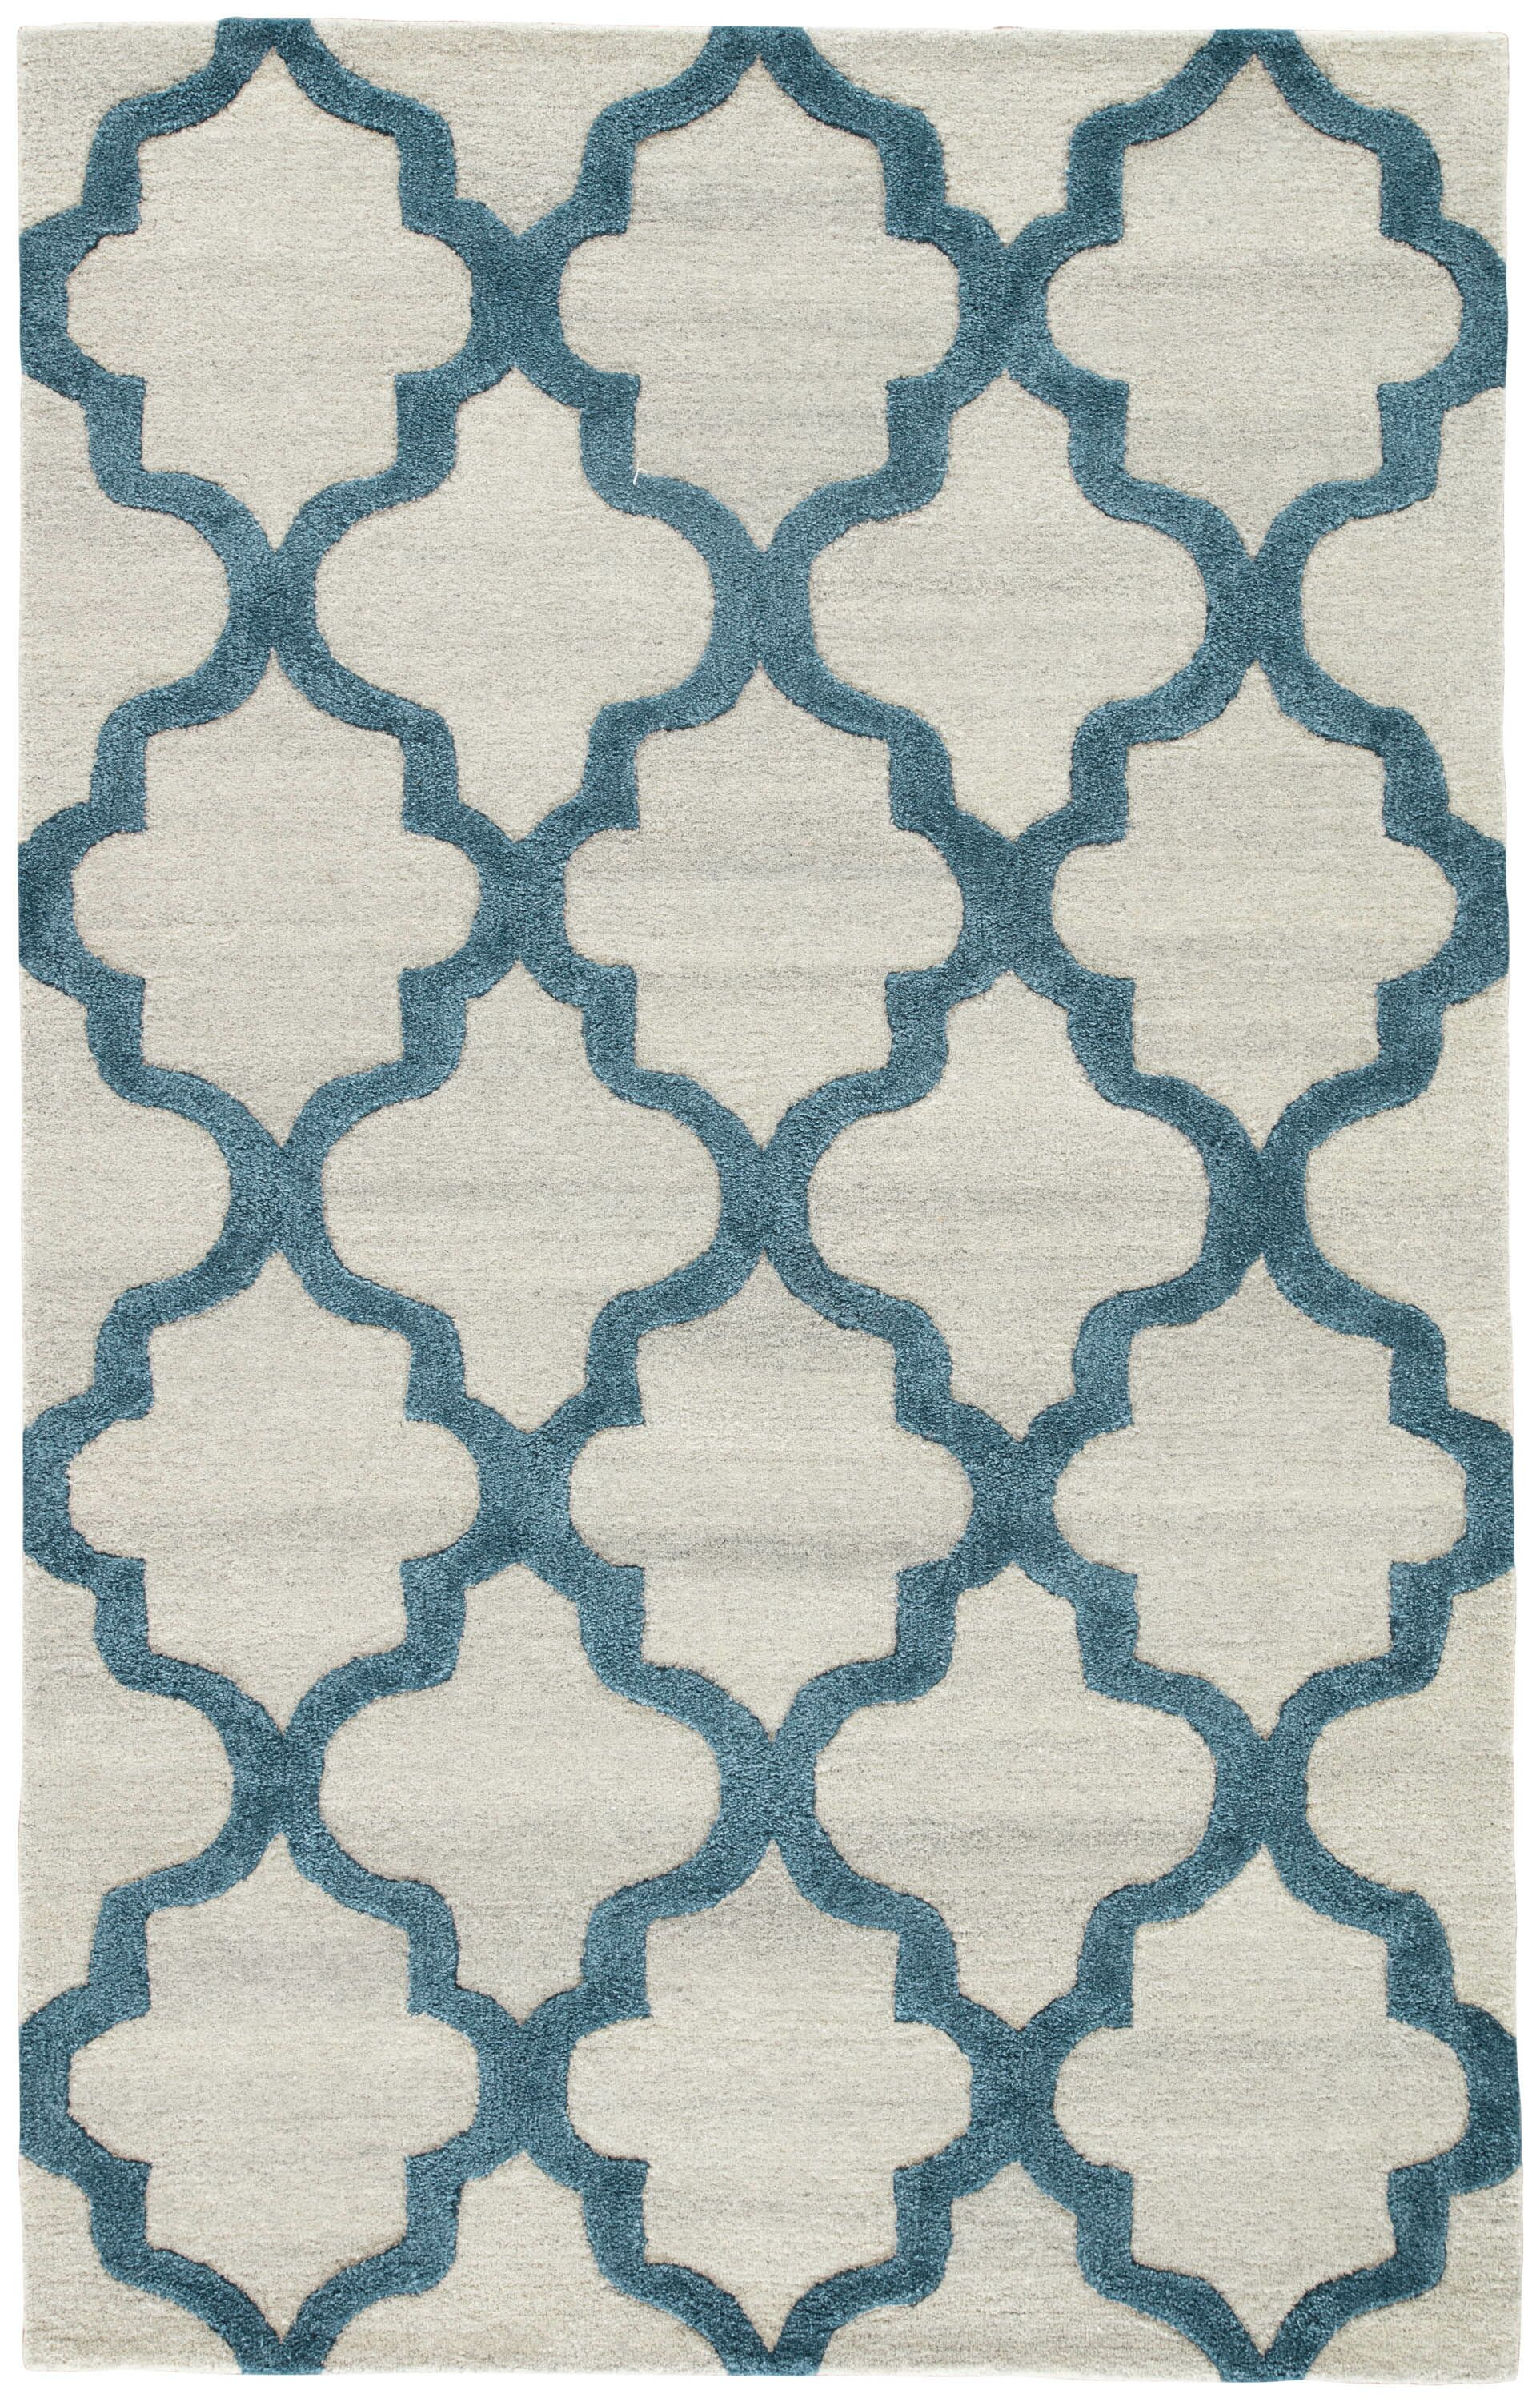 Portland Hand-Tufted Silver/Blue Area Rug Rug Size: Rectangle 5' x 8'